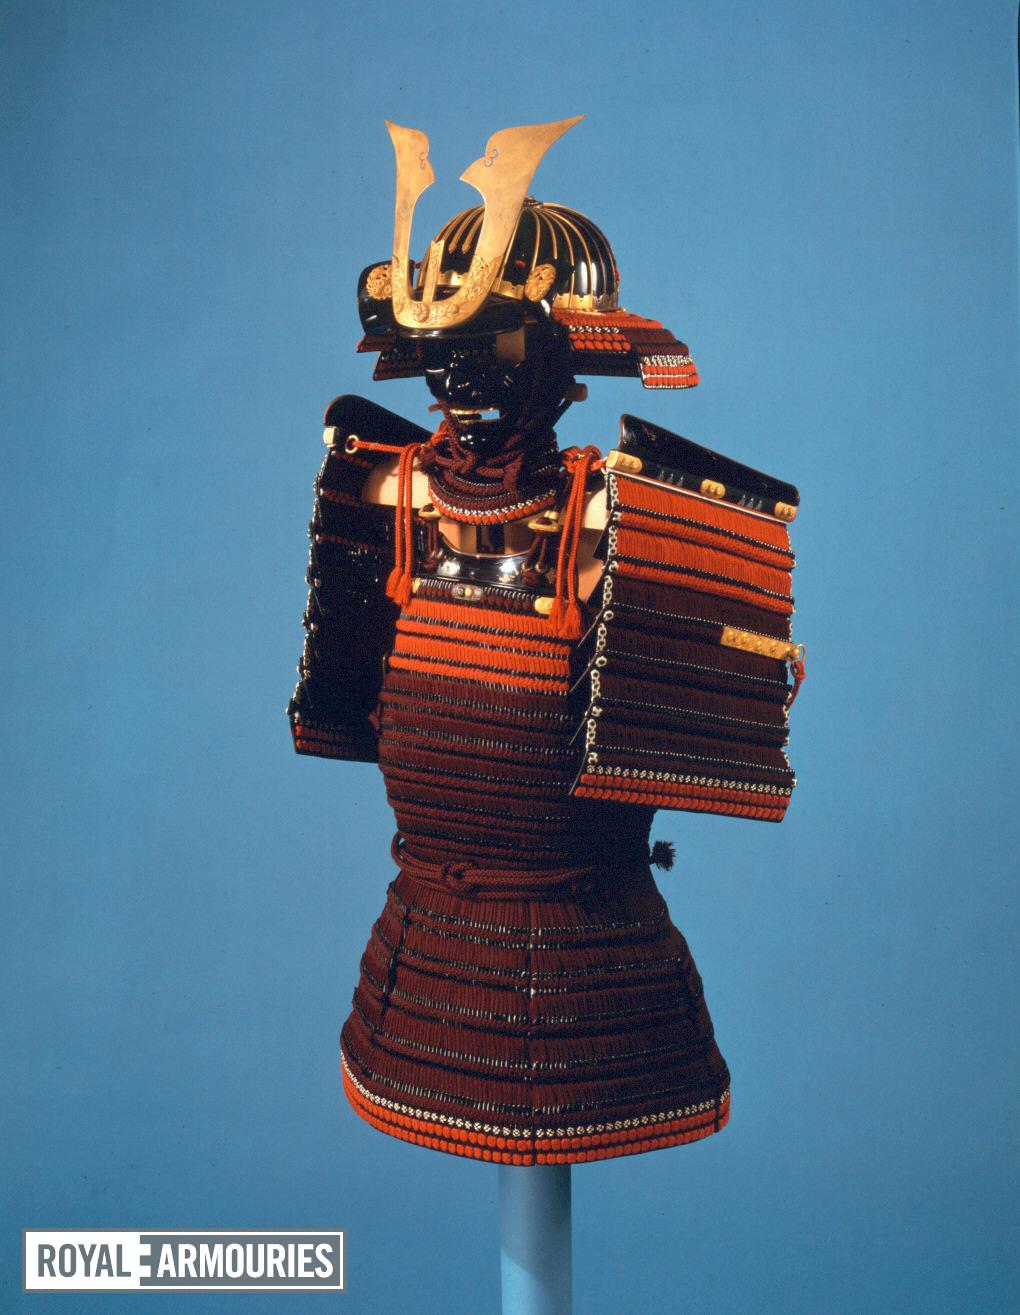 Helmet (kabuto) - Kabuto Presented to King James I by Tokugawa Hidetada by Iwai Yozaemon.